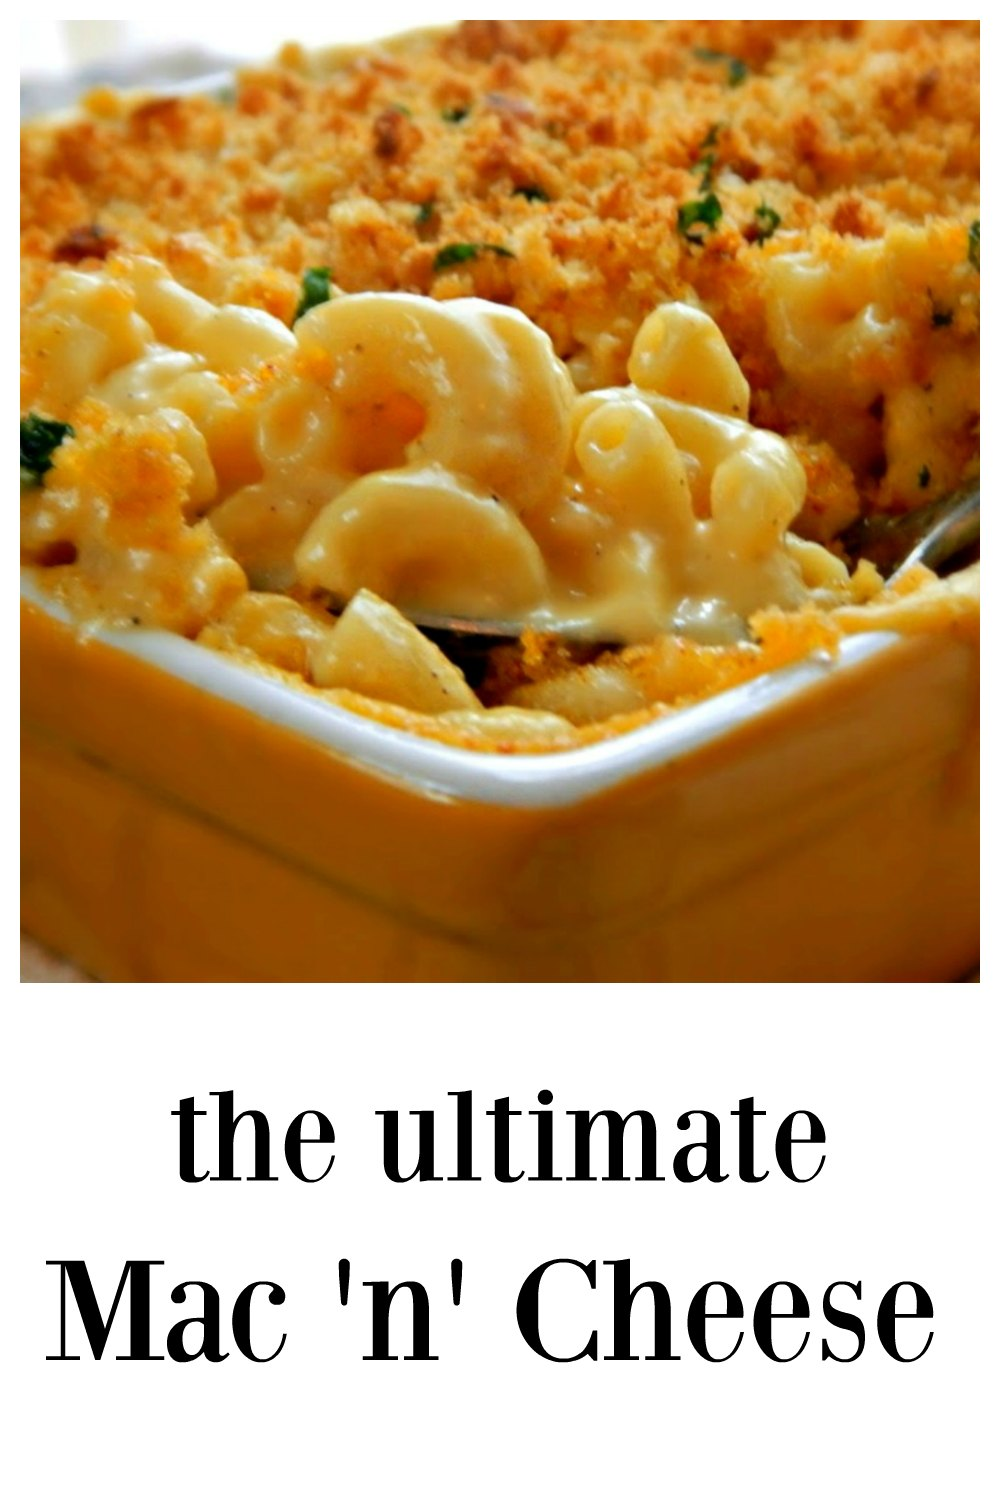 This really is the BEST Mac & Cheese I've ever made - no make that the BEST I've EVER tasted!! From the perfect texture of the macaroni, the luscious creamy cheese and that killer bread crumb topping - it's all good! #UltimateMac&Cheese #UltimateMacaroni&Cheese, #BakedMacaroni&Cheese